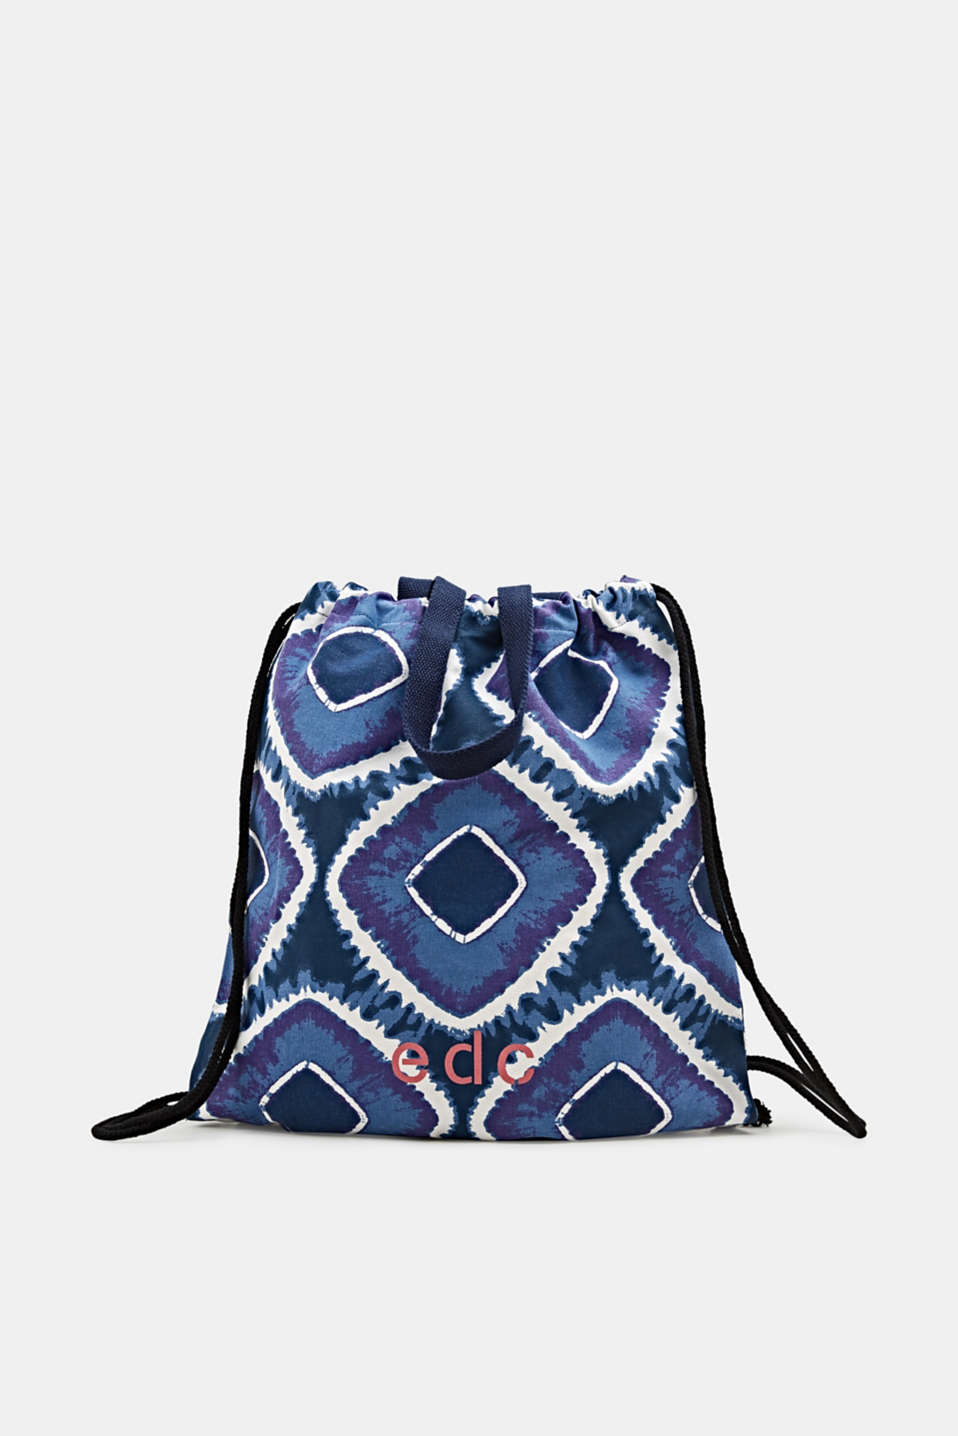 edc - Drawstring rucksack with a batik pattern